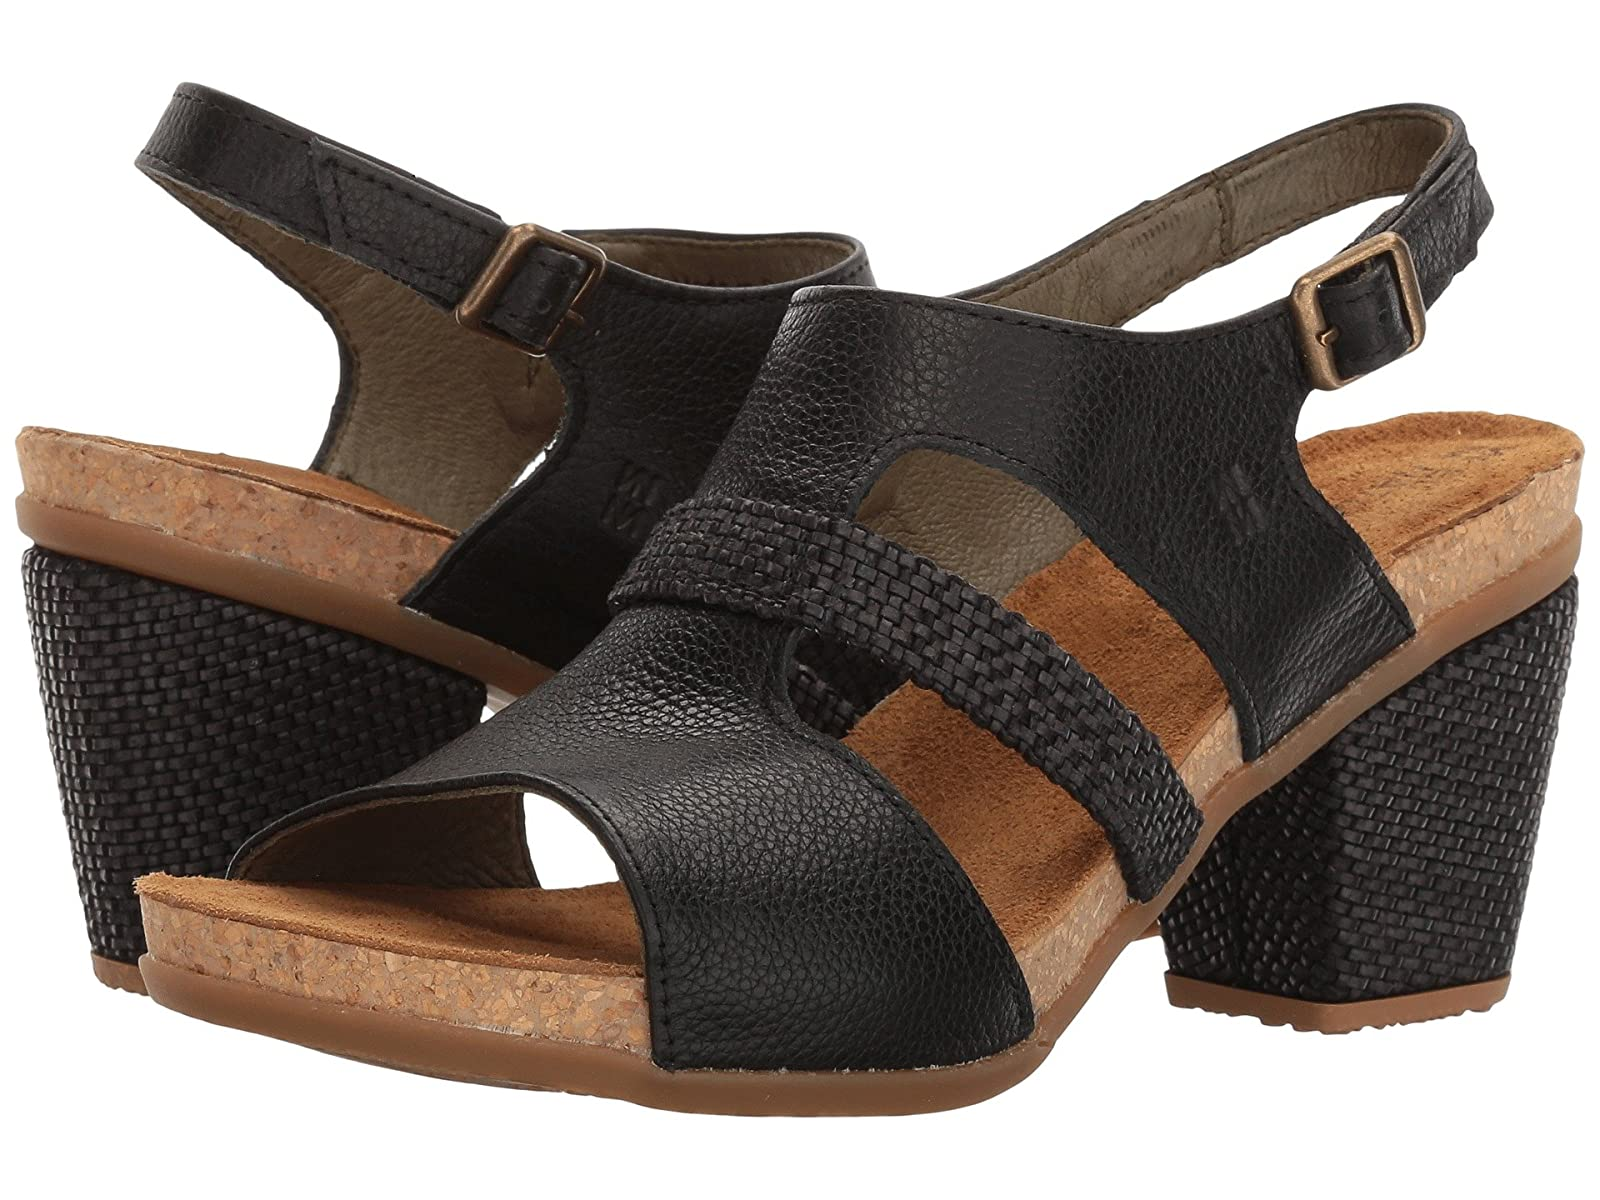 El Naturalista Mola N5031Cheap and distinctive eye-catching shoes